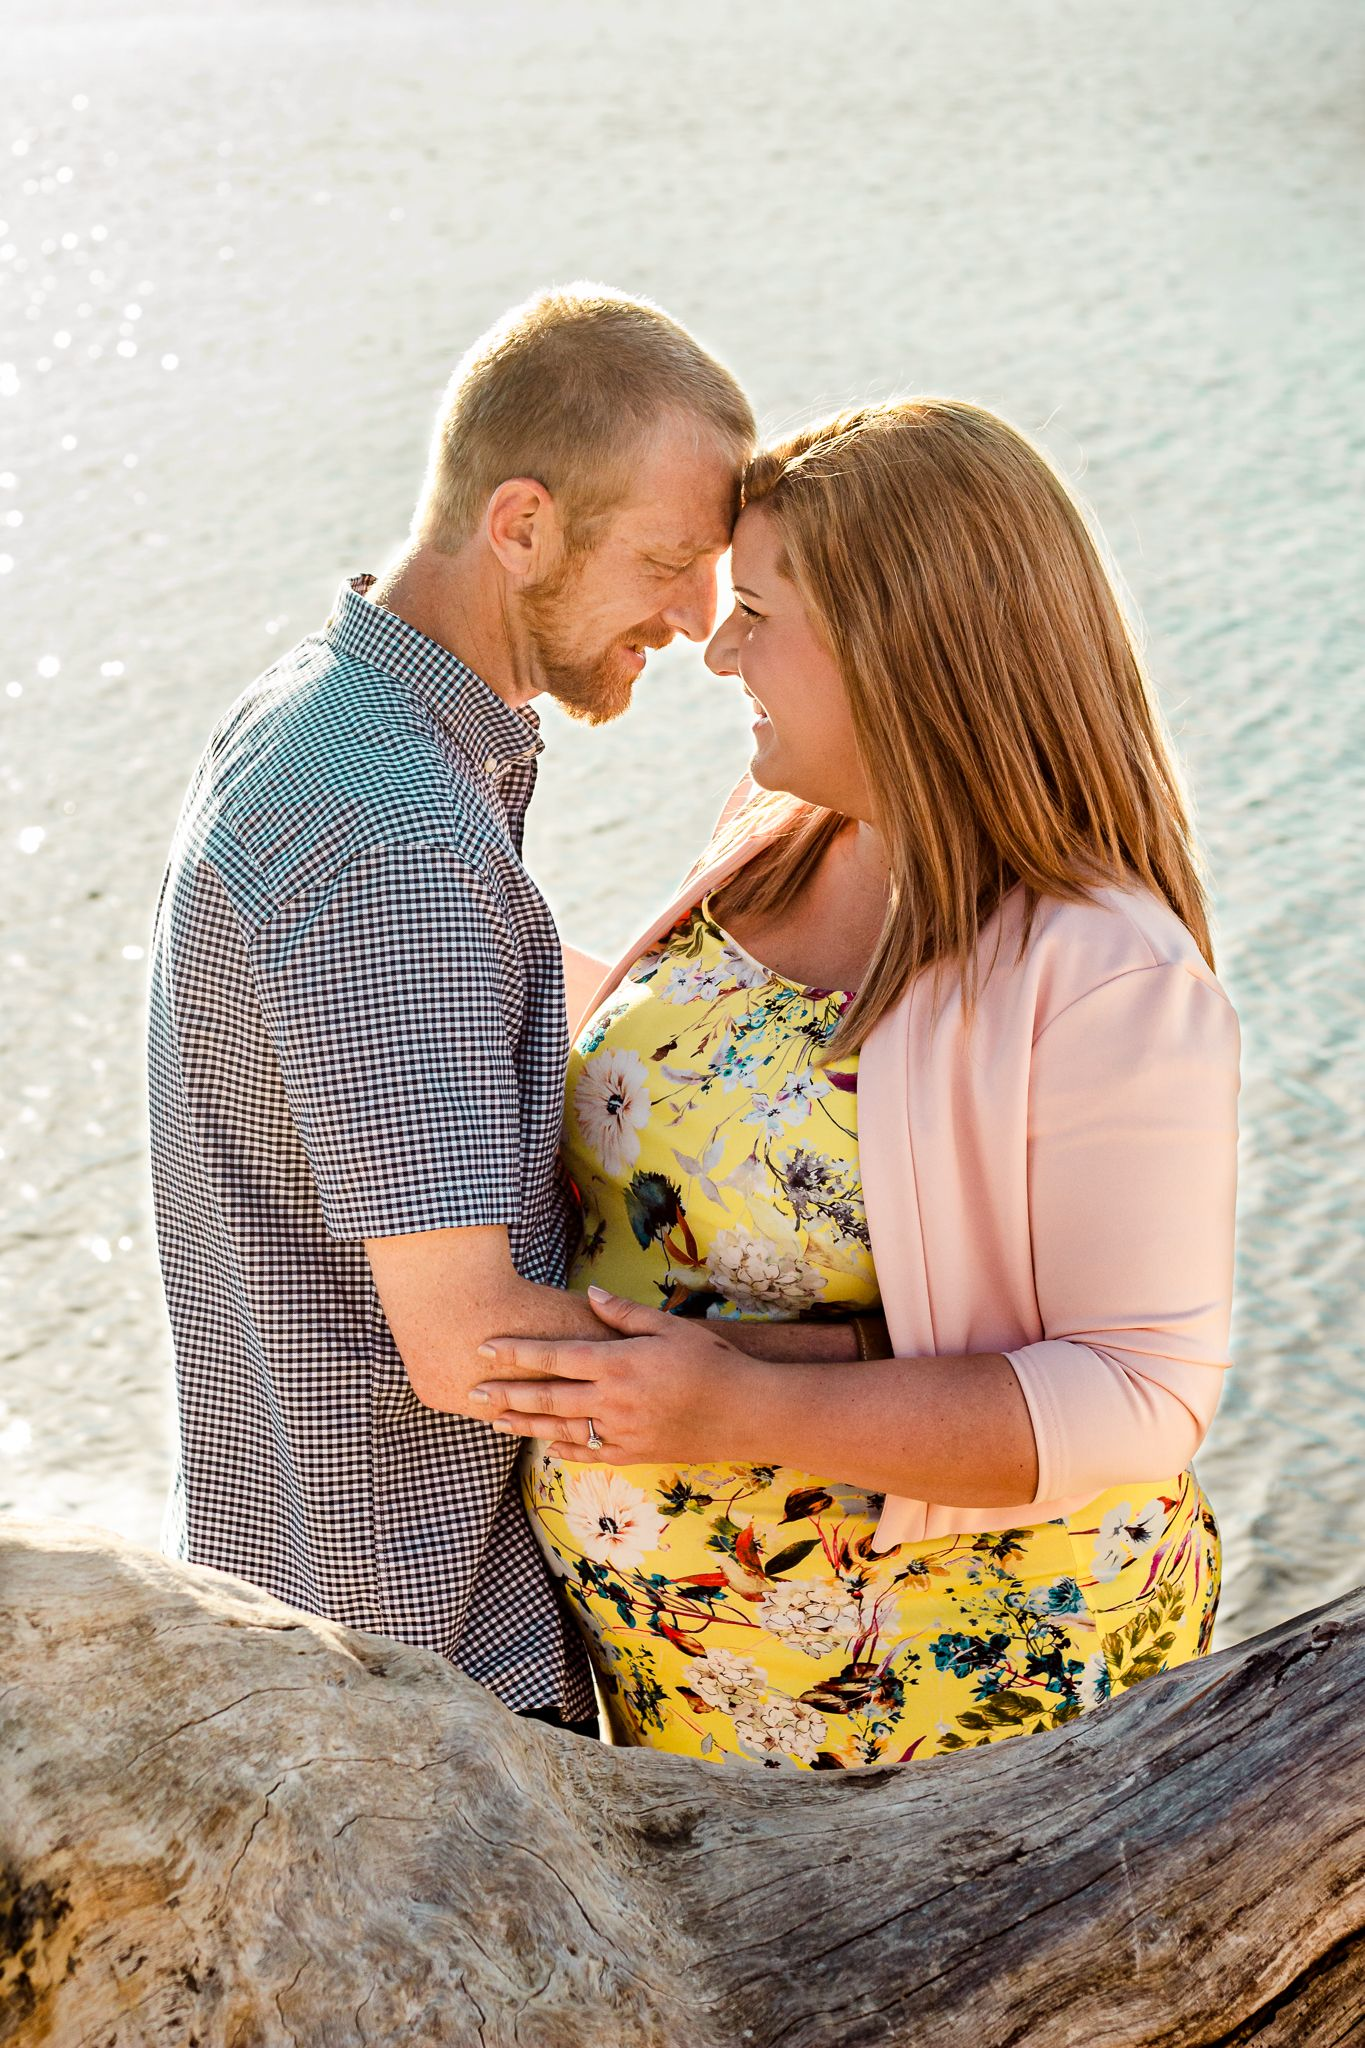 A maternity couple embrace and smile at each other by the sea on a Hayling Island Beach while the sun sets behind them.